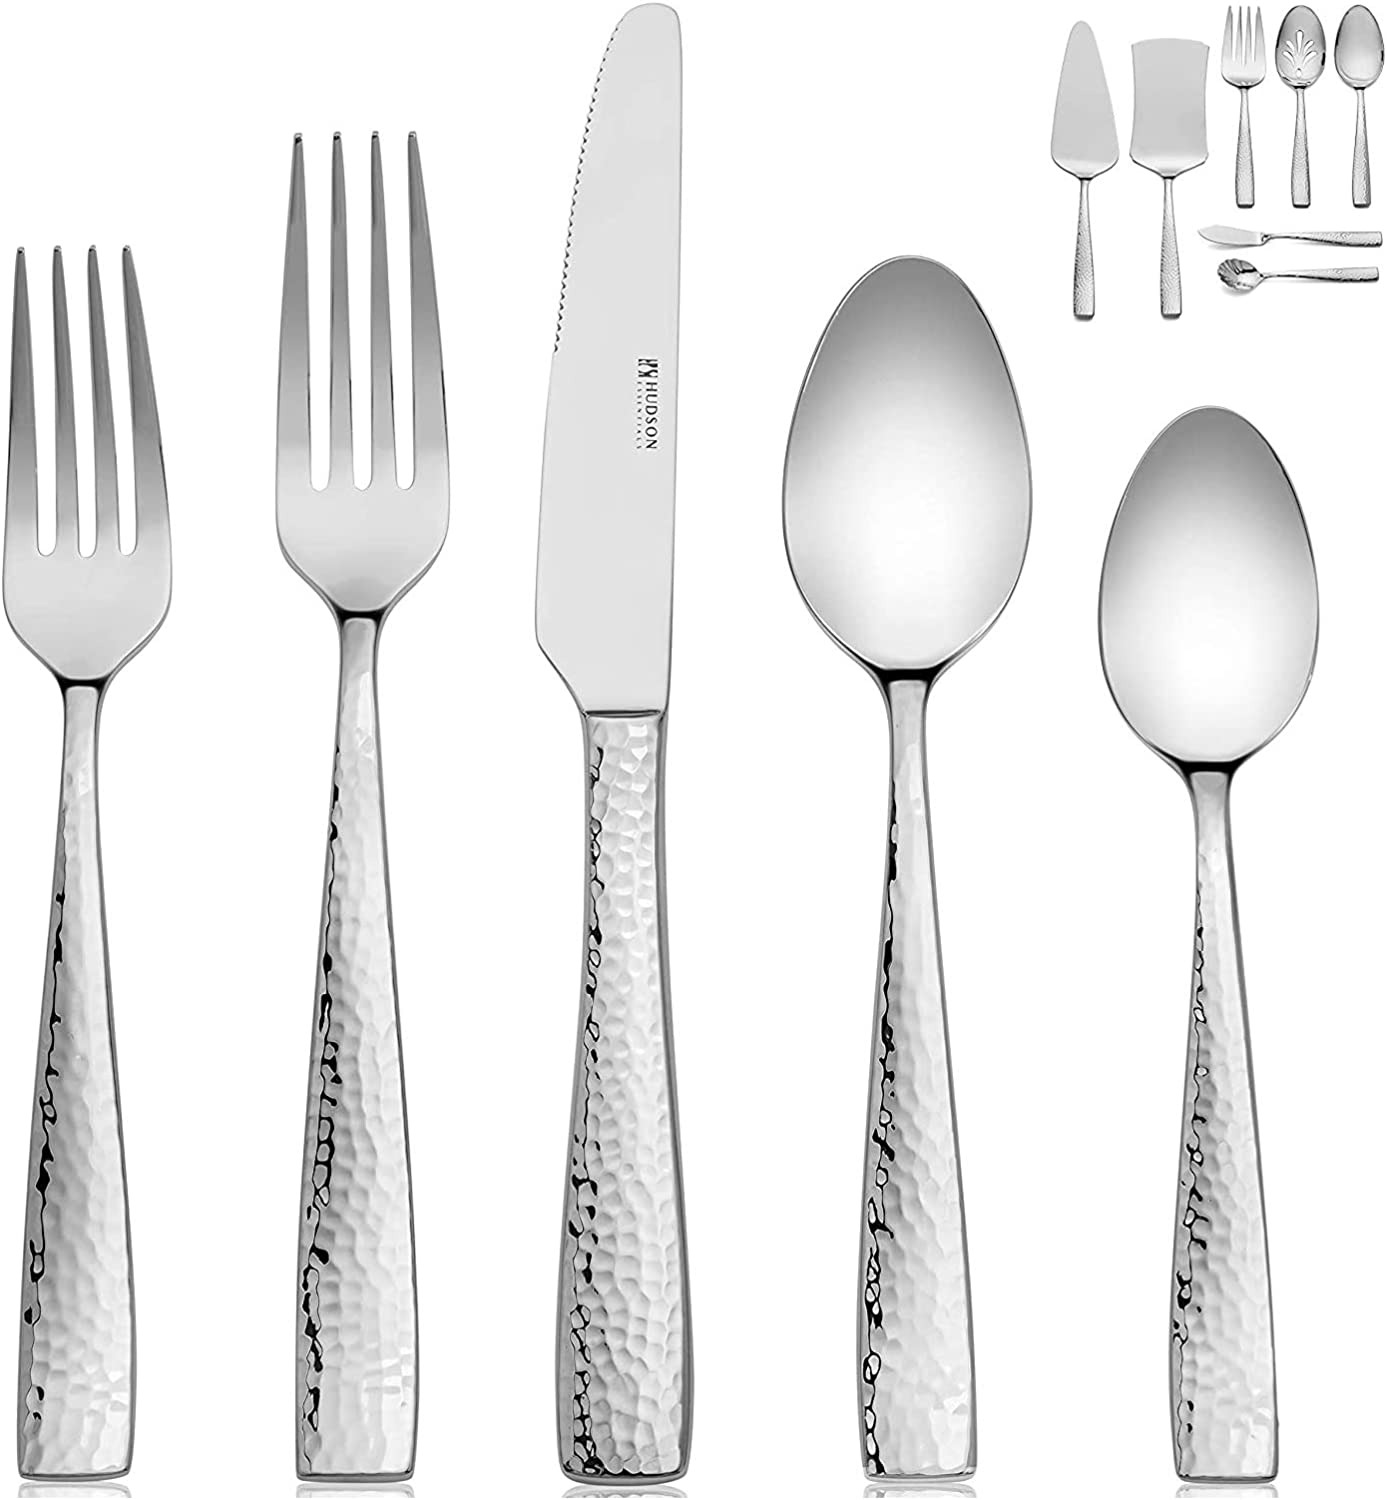 Hudson Essentials 68-Piece Hammered 18/10 Stainless Steel Flatware Silverware Set with Serving Set, Service for 12